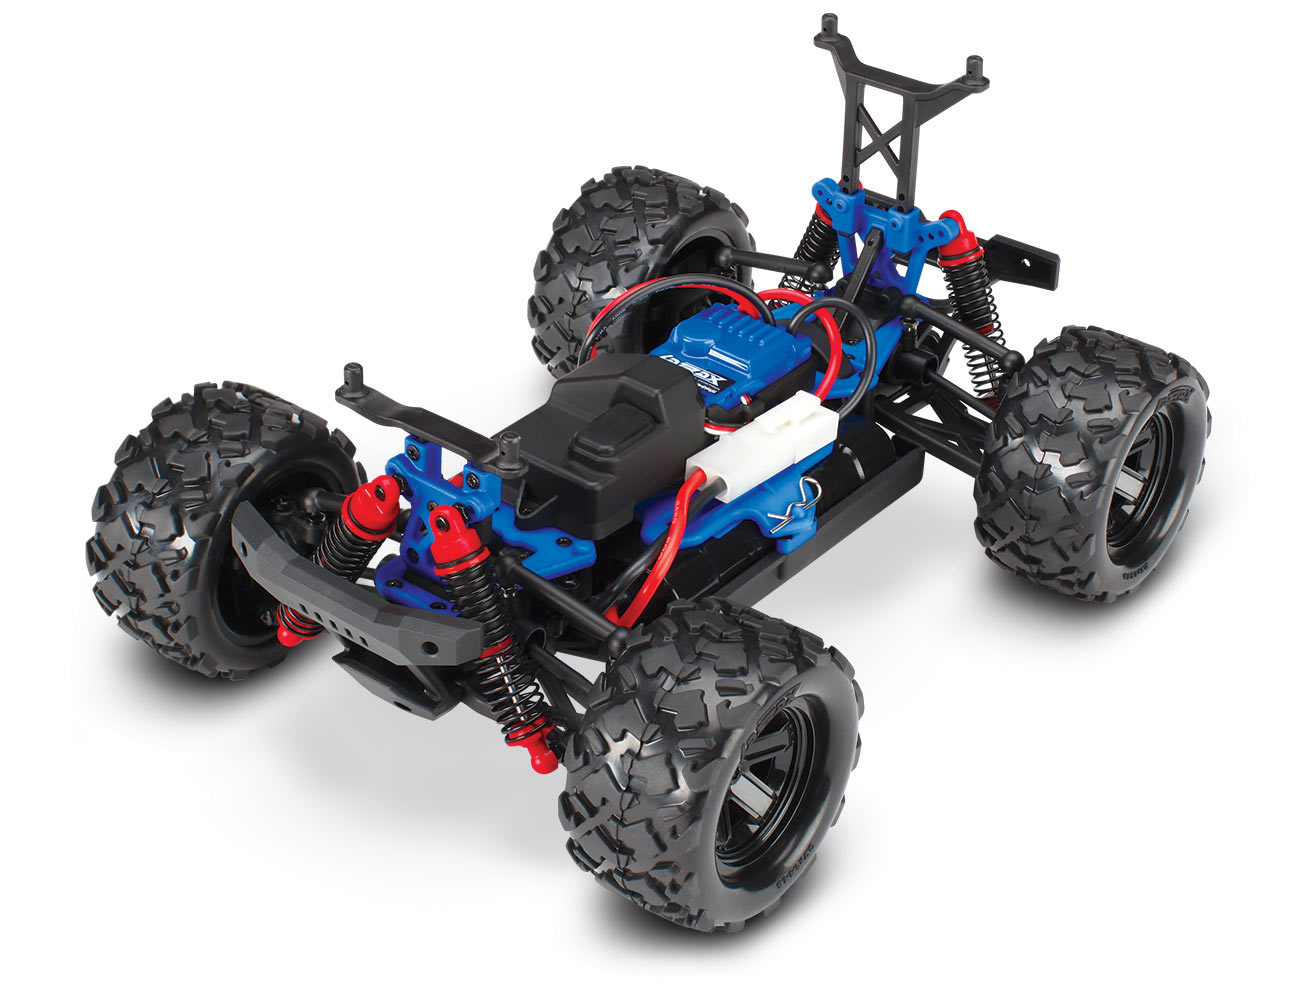 traxxas 4x4 rc car with Showthread on Rc Lights  Head And Brake  bo Review likewise 1965727 besides 3410 00 Karosserie Traxxas 1 8 Rat Rod Klar P 56838 further Red Hot Traxxas Trx 4 News Bronco 2 2 Kit likewise Watch.